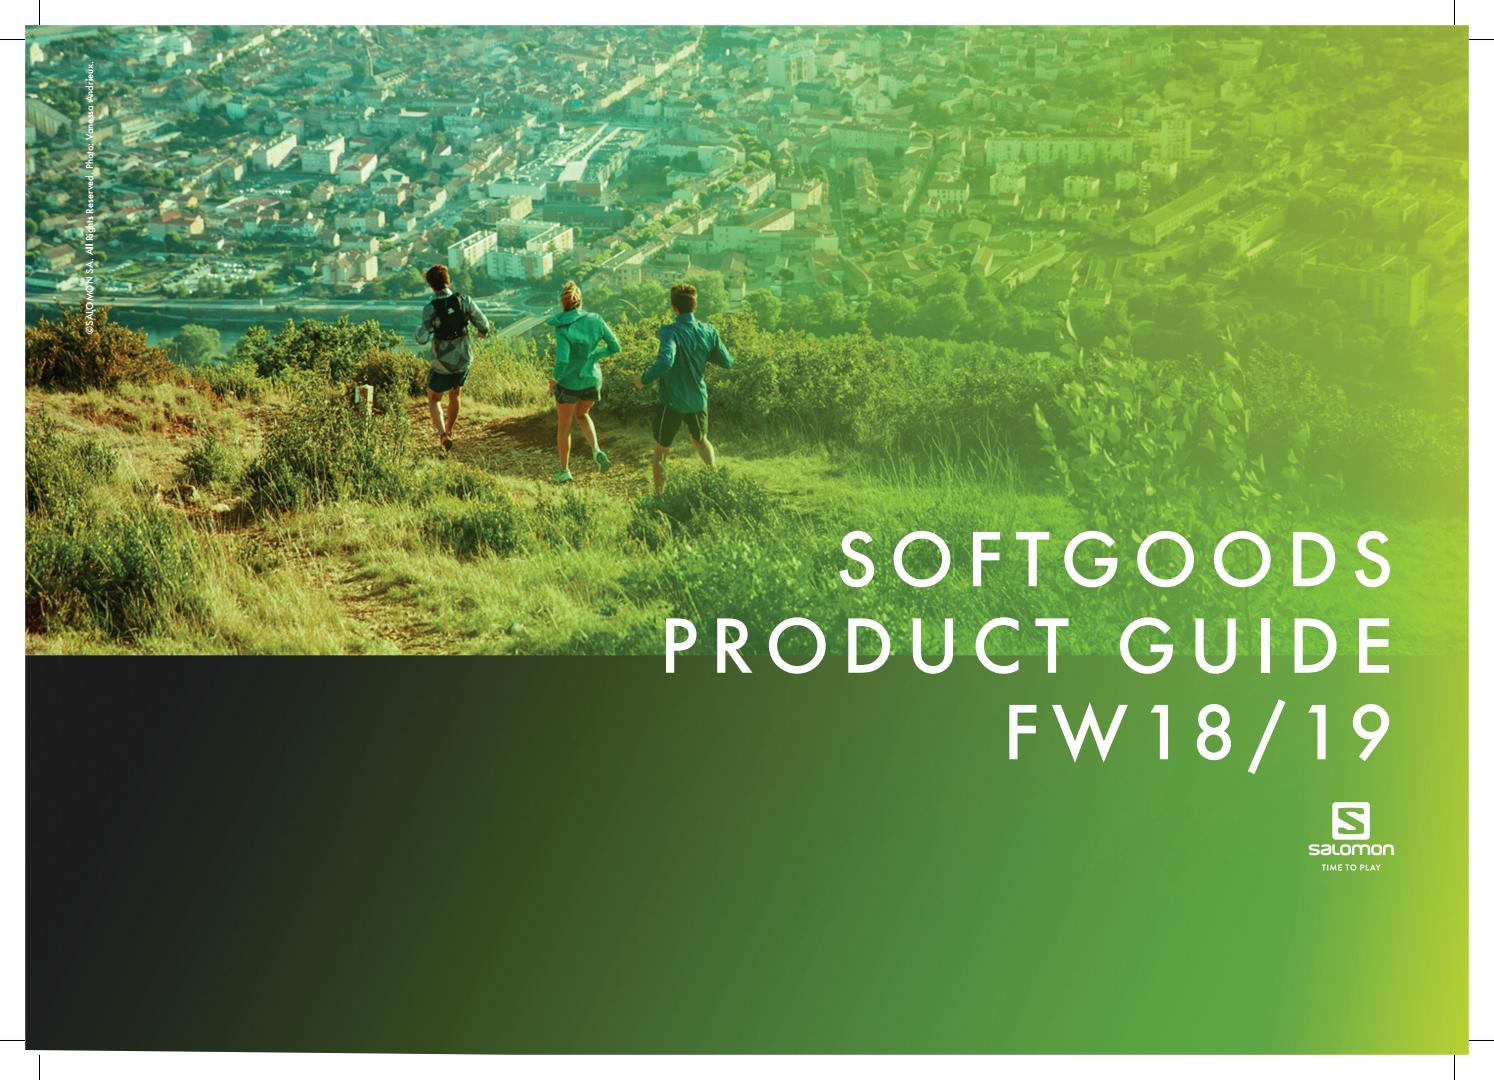 f3e3bd454178 Softgoods Product Guide FW18 19 by Salomon - issuu